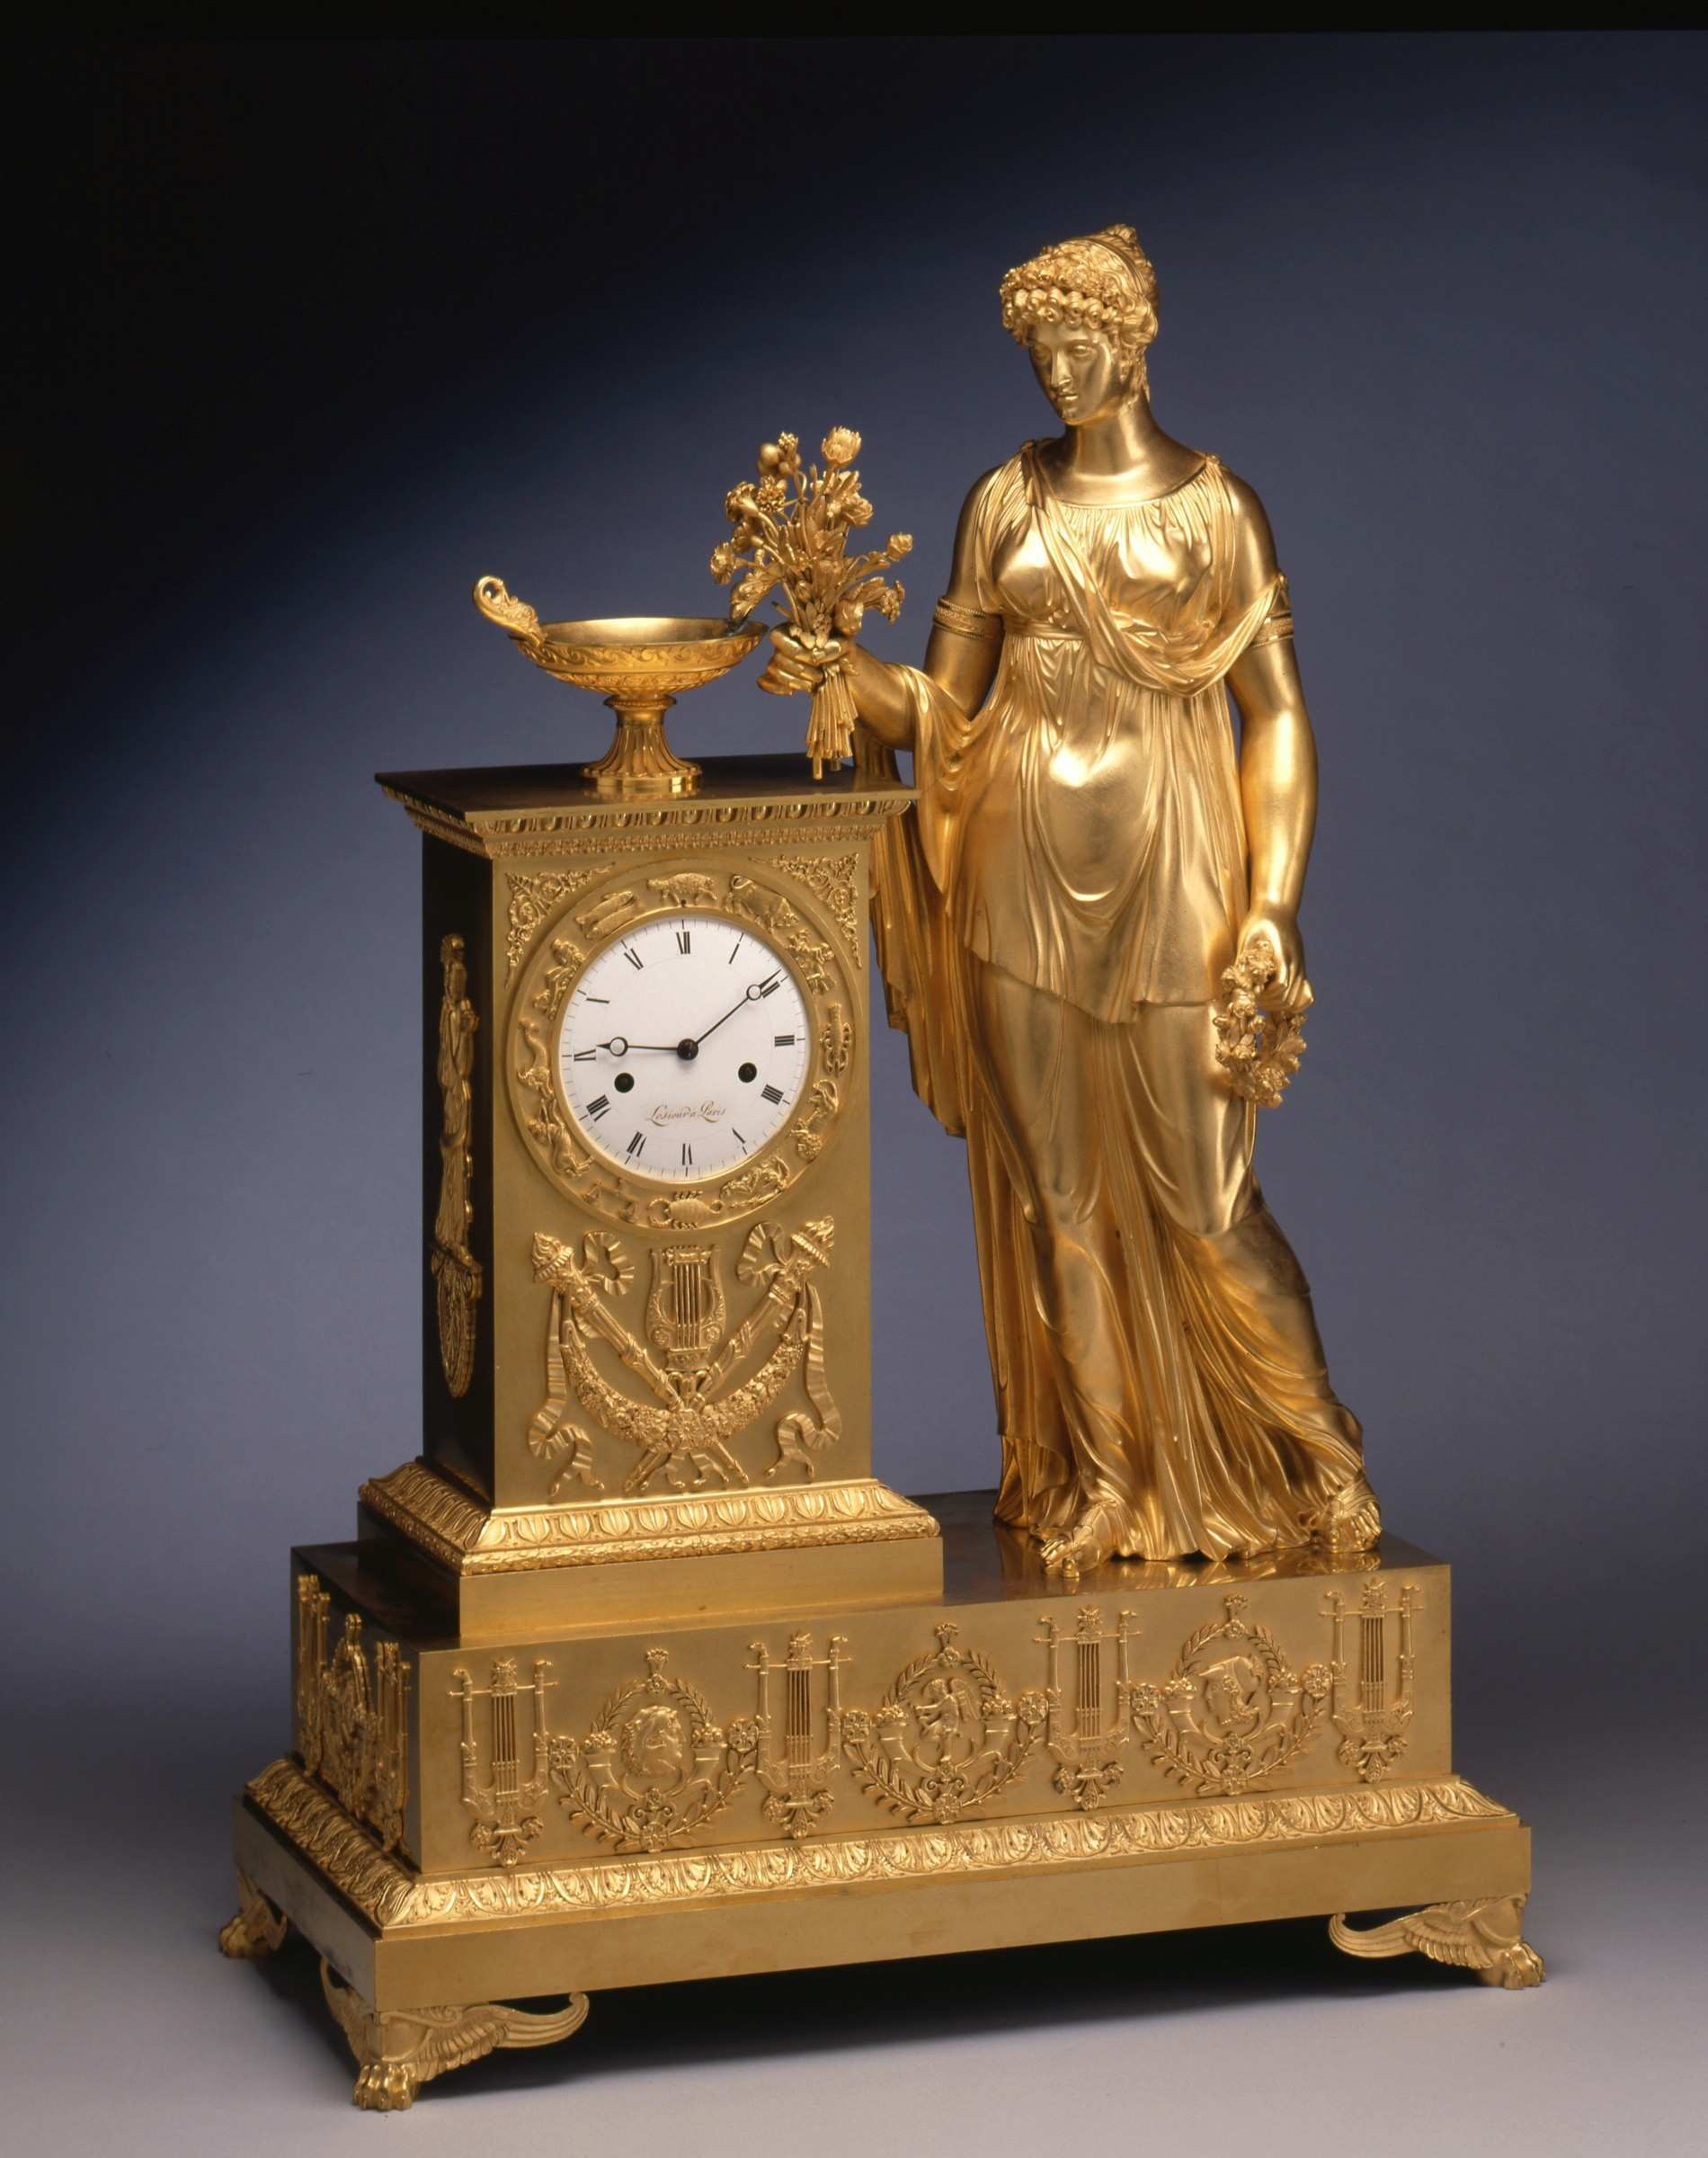 Lesieur An Empire mantel clock by Lesieur Paris date circa 1815